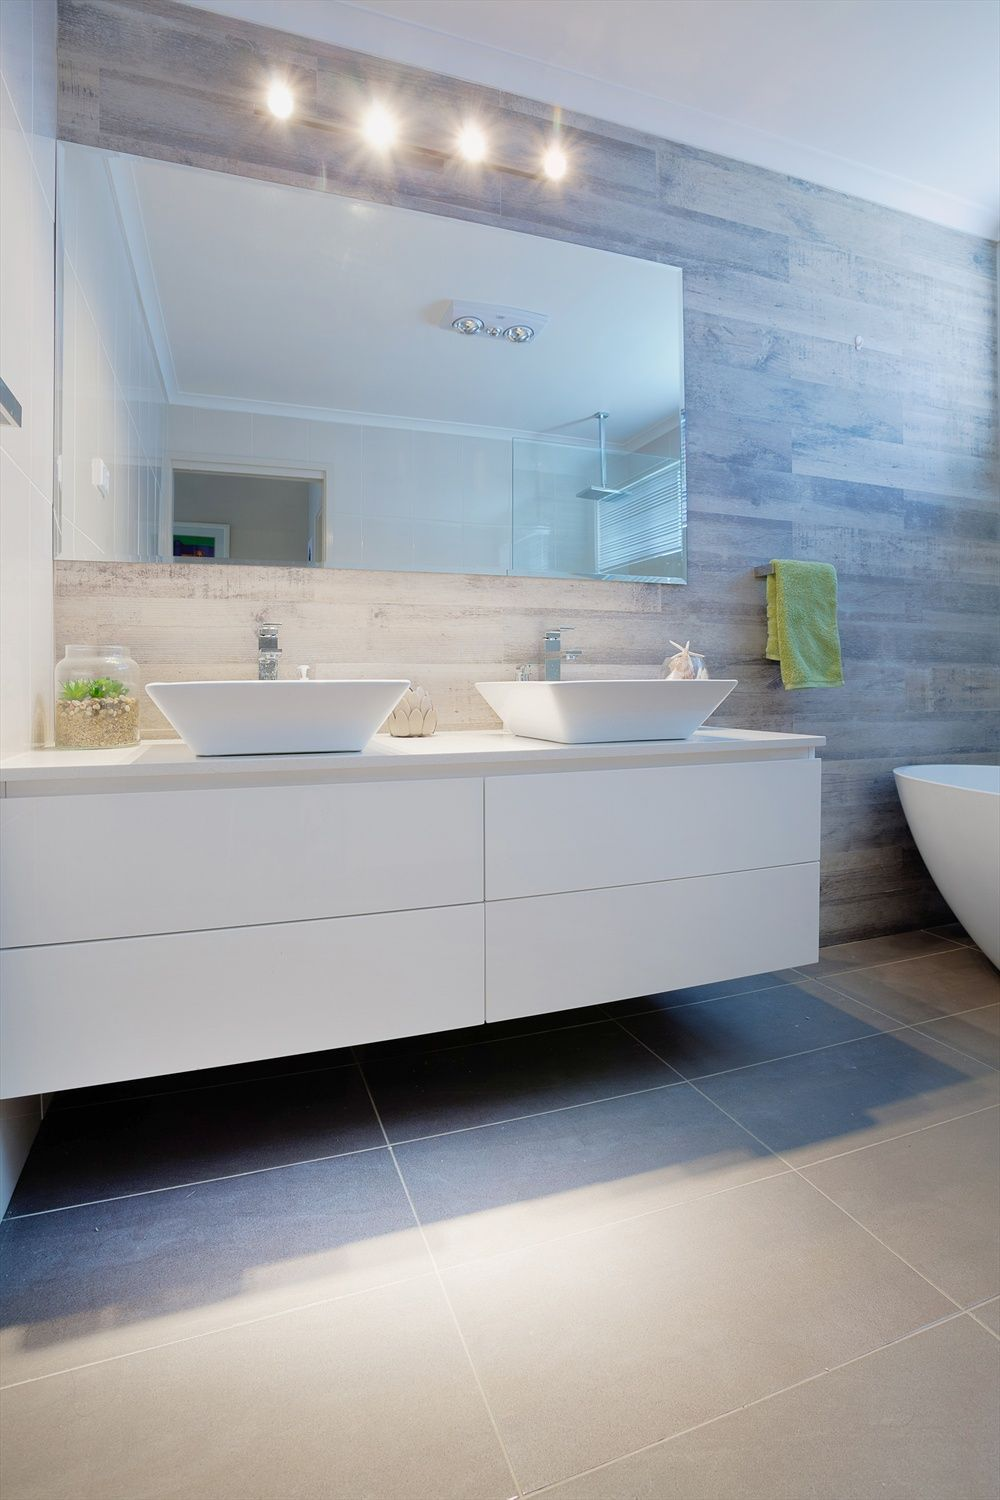 Interior design inspirations for your luxury bathroom. Check more at ...